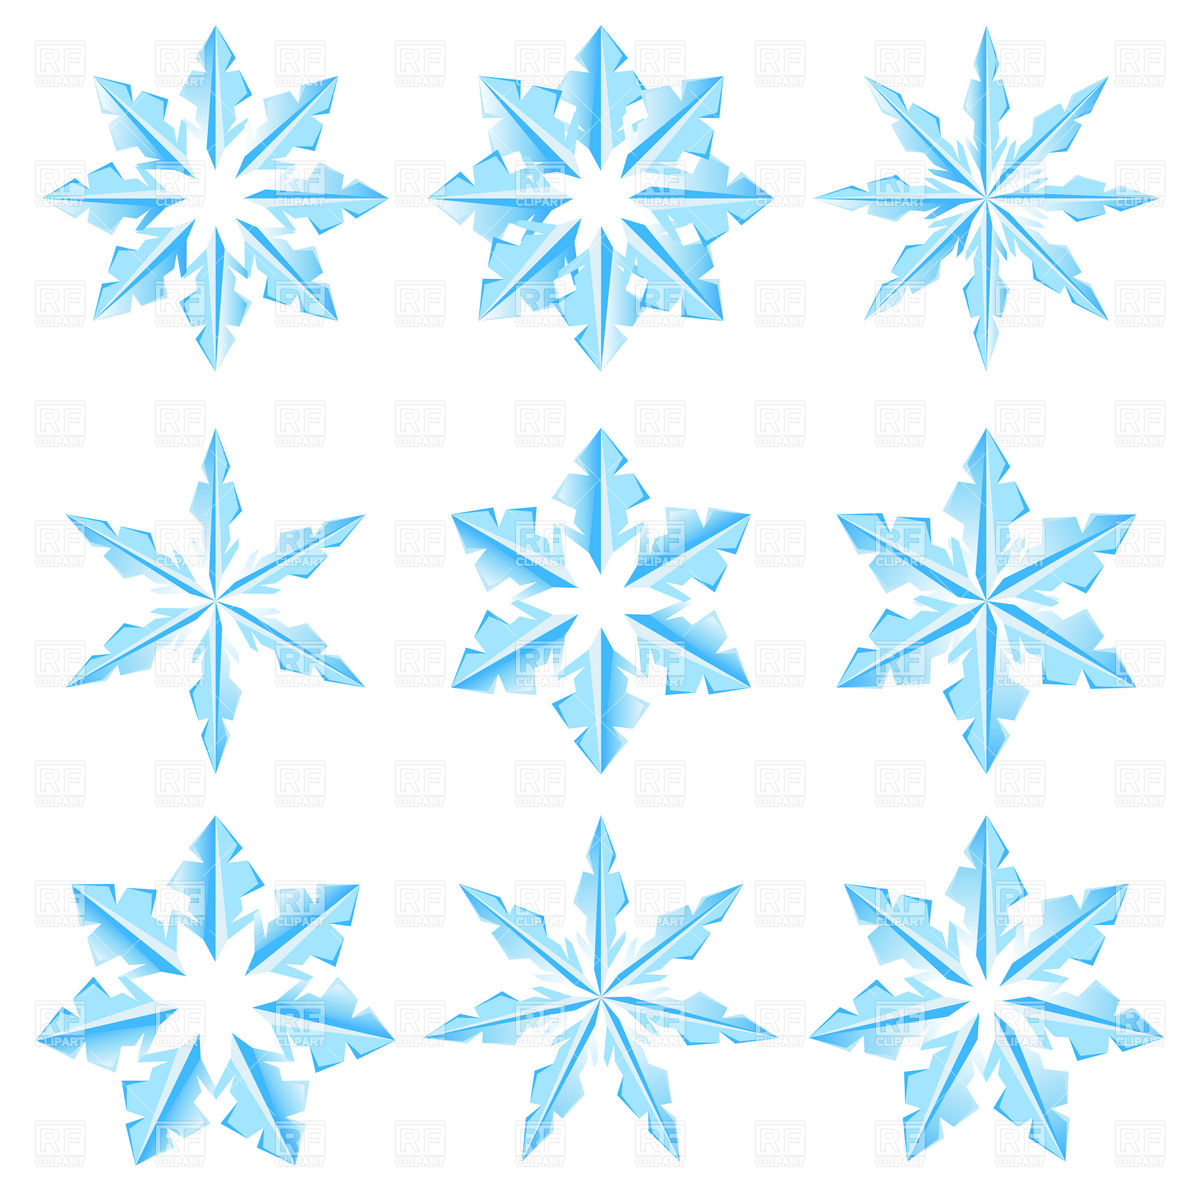 Ice Crystals Clipart.